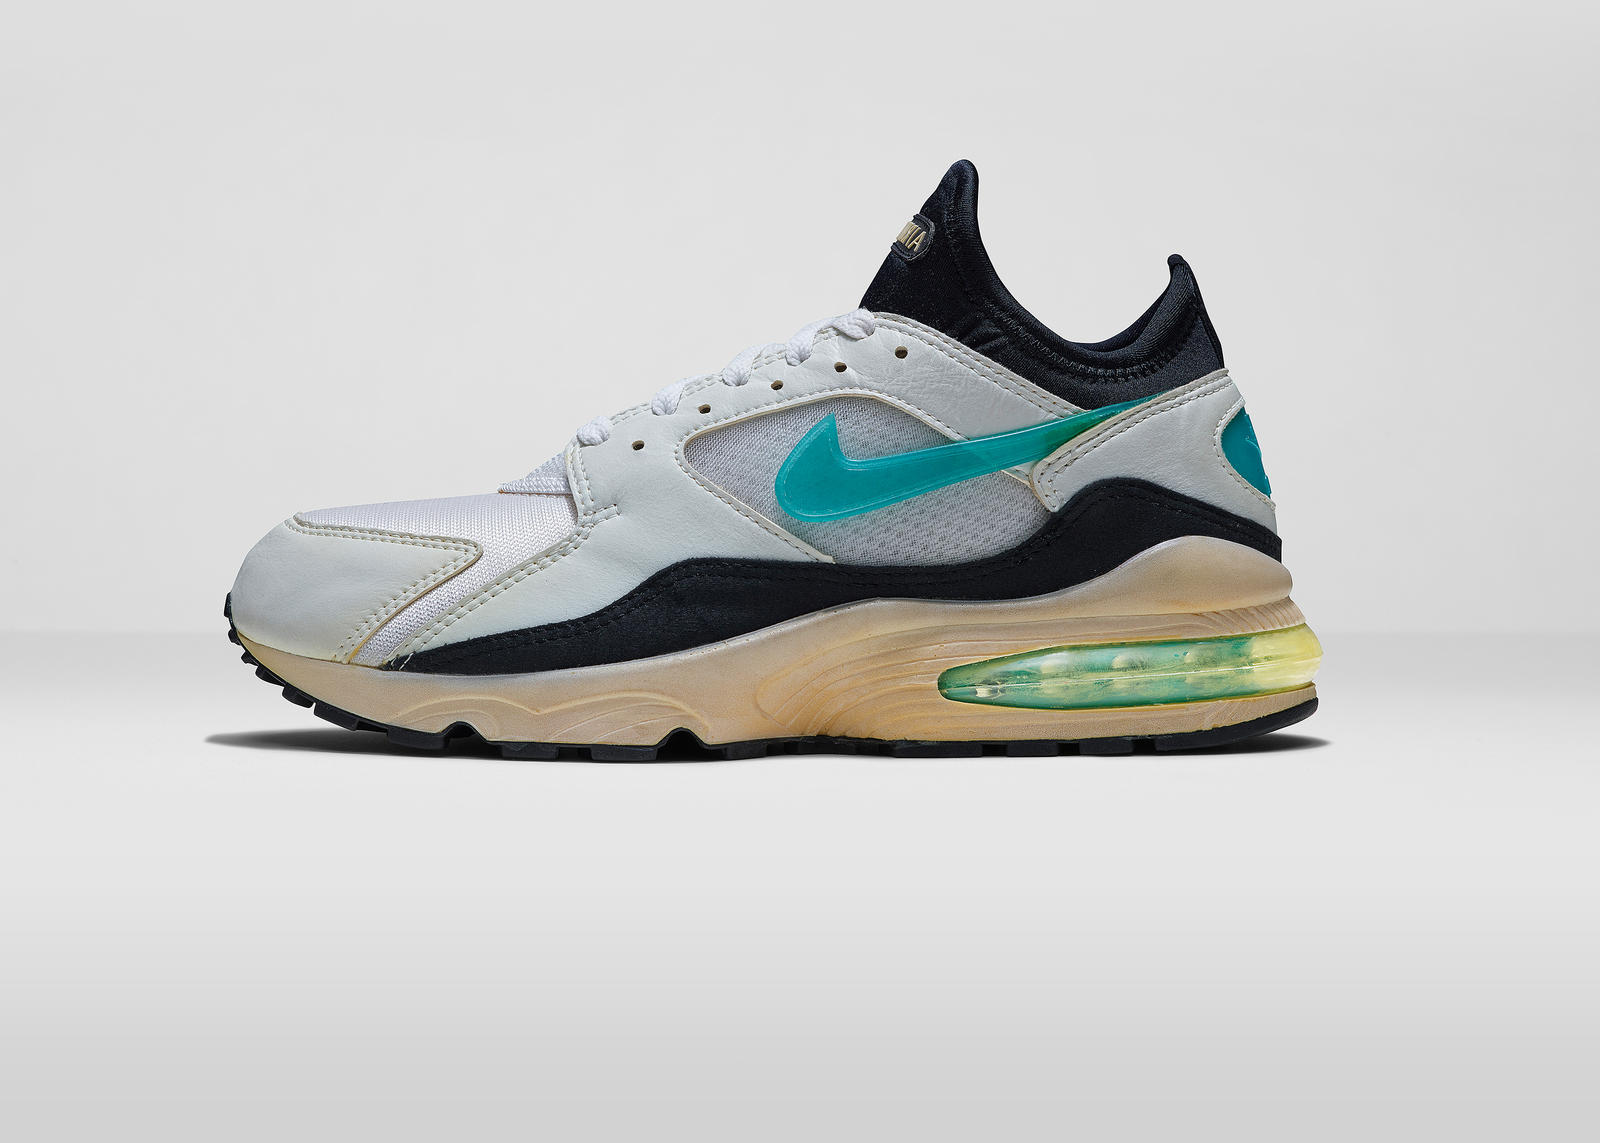 Air Max Archives - Nike News